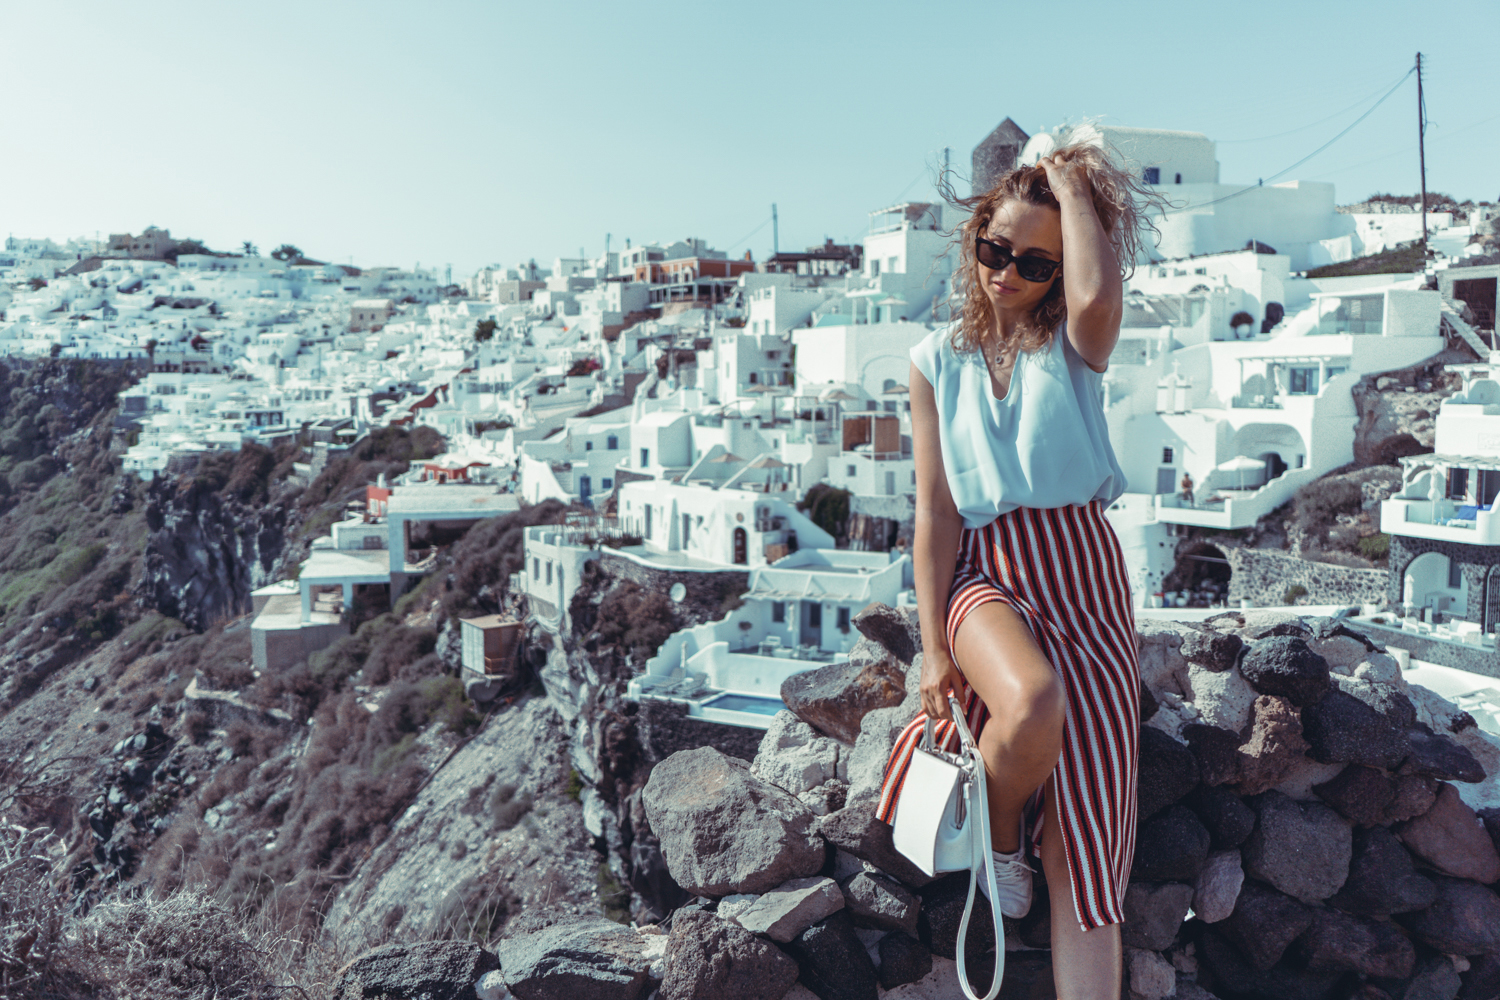 ca38fbe2f965 fira greece travel summer holiday fashion ootd street style outfit blonde  tumblr girl lookbook striped skirt vogue